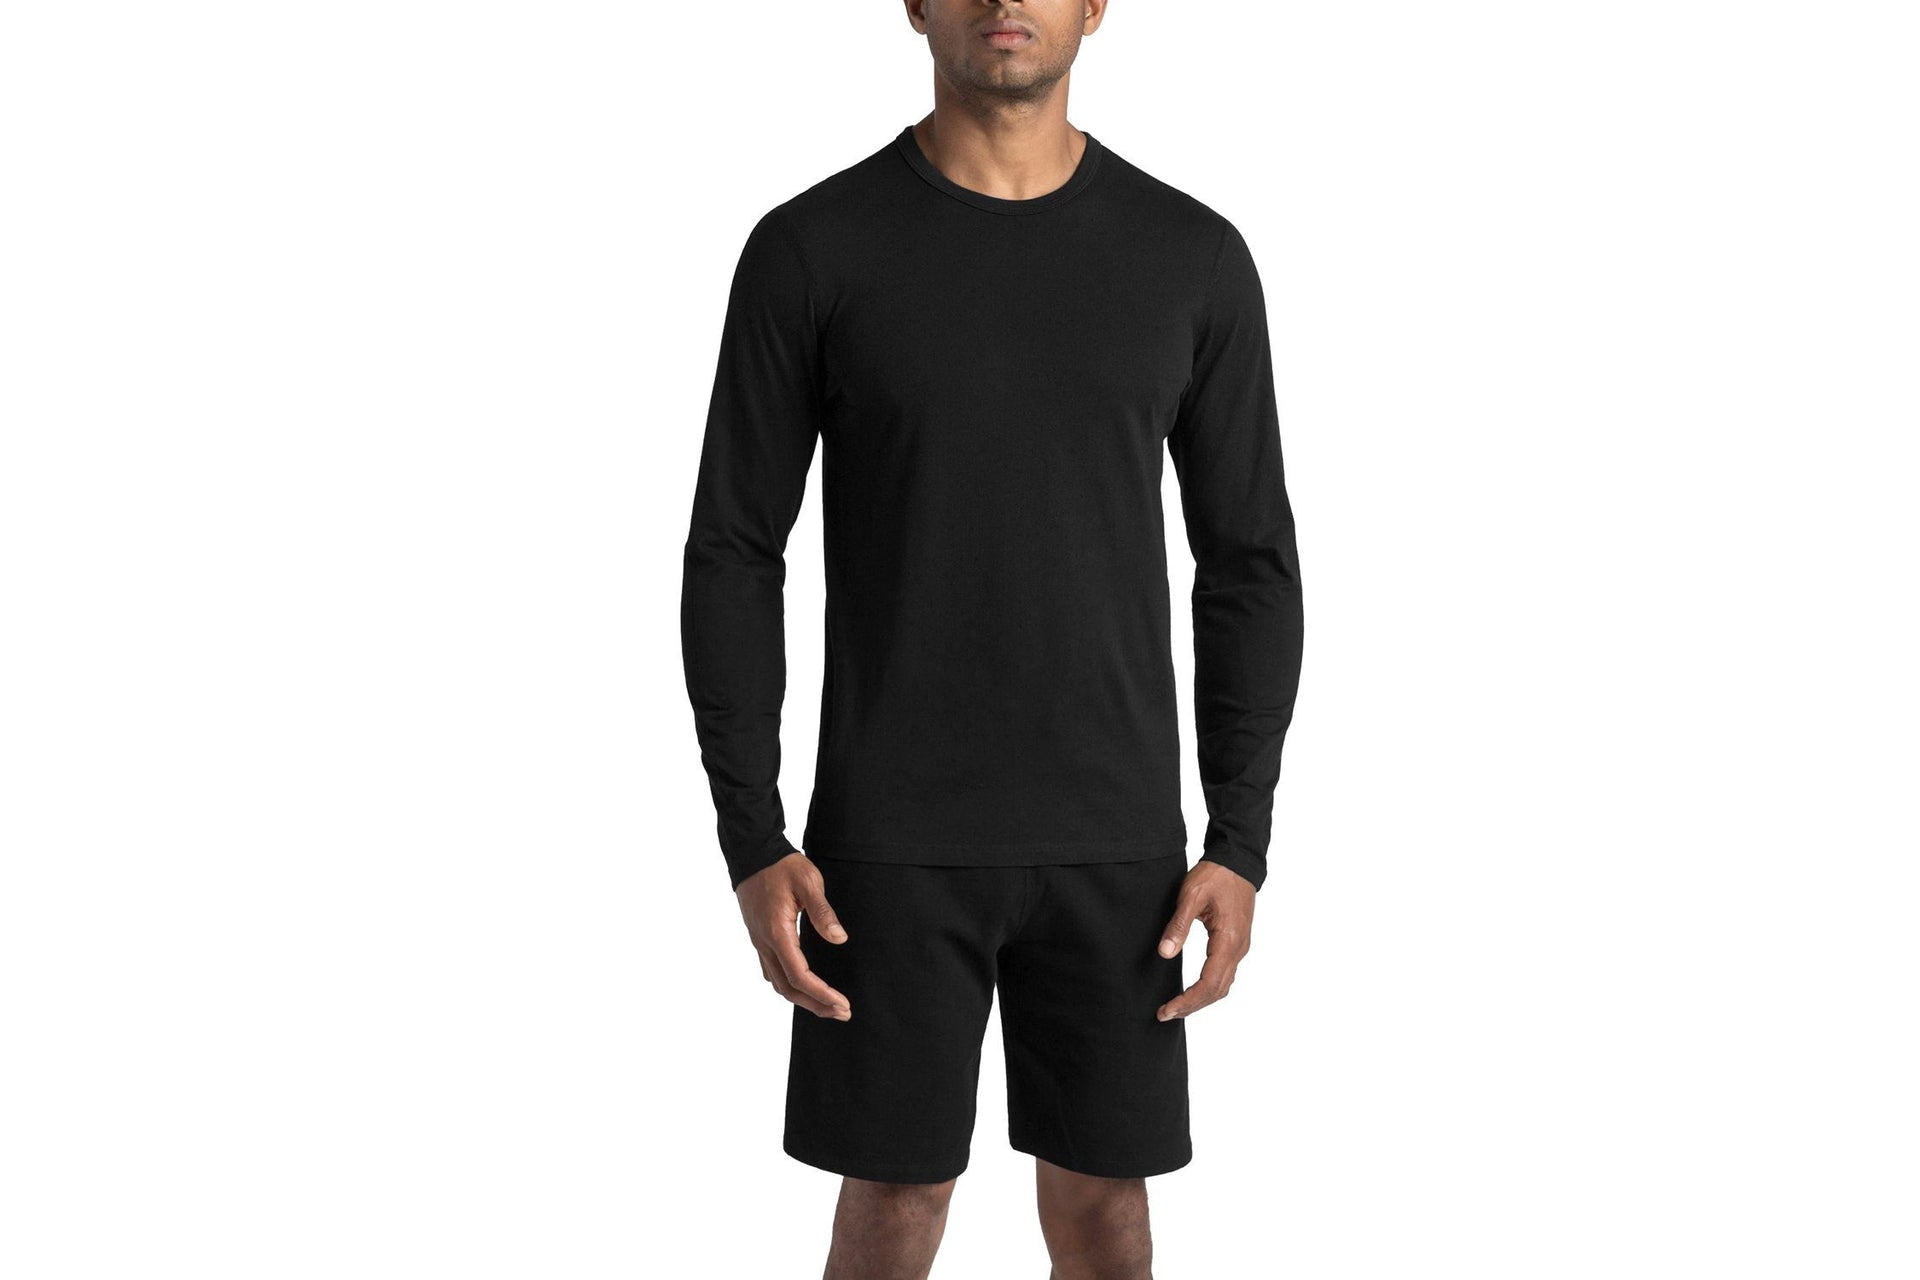 KNIT COTTON JERSEY LONG SLEEVE CREWNECK RC-2087 MENS SOFTGOODS REIGNING CHAMP